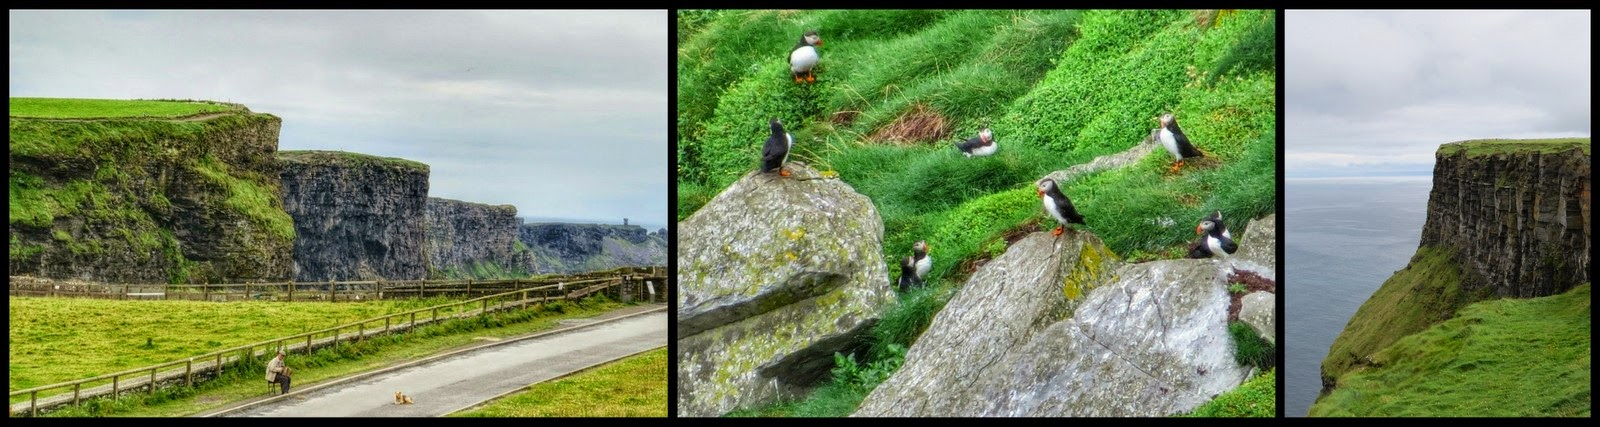 Cliffs of Moher and Puffins